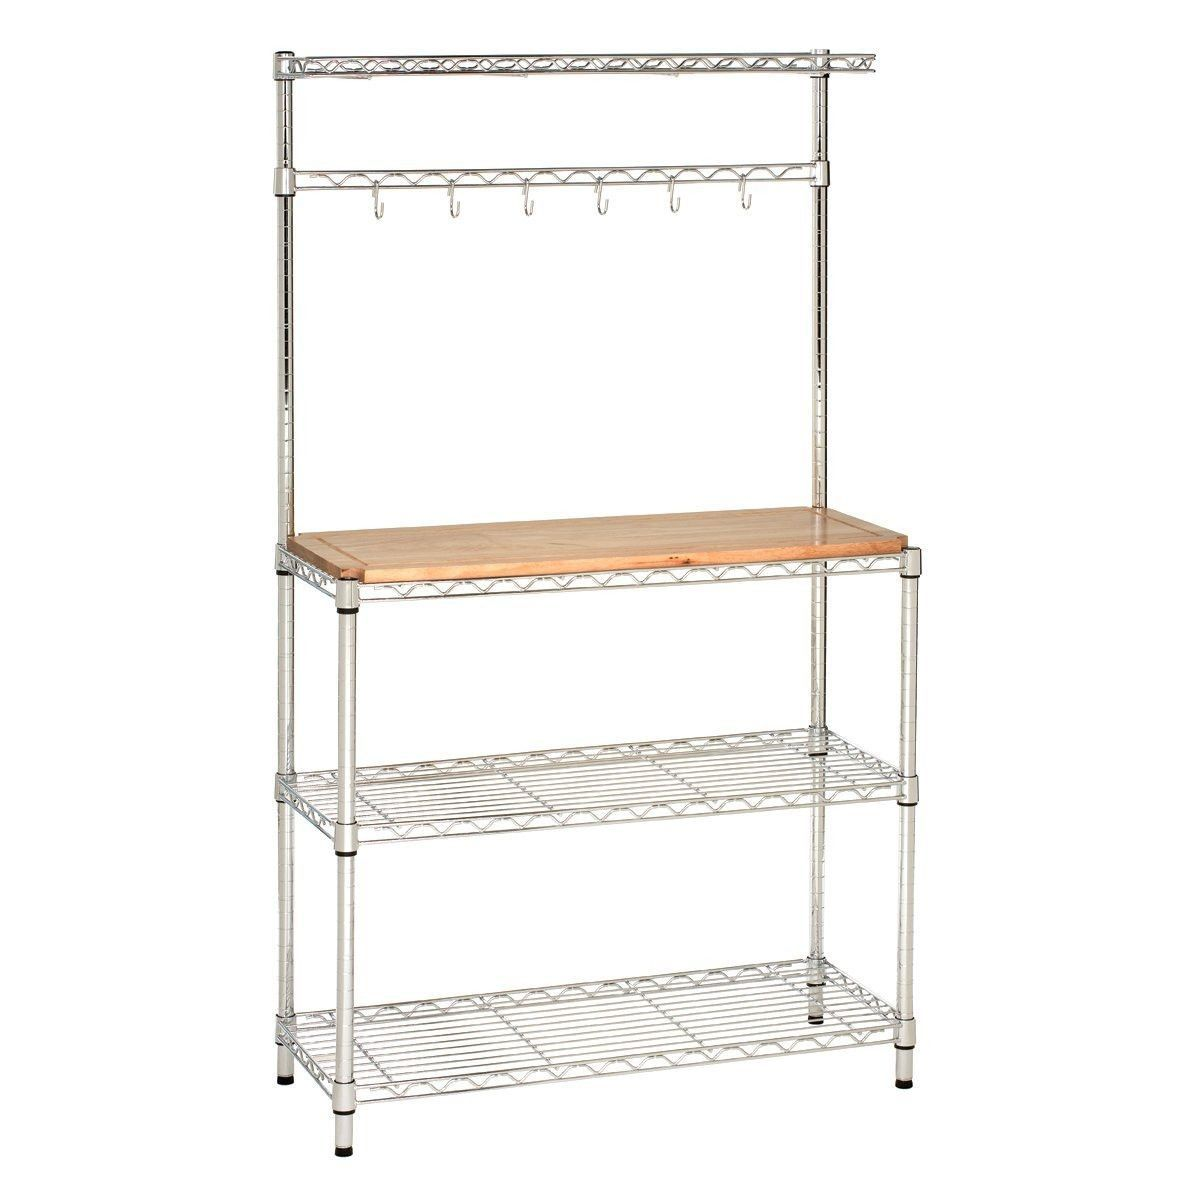 Modern Kitchen Bakers Rack with Hanging Bar and Wood Top | Home ...